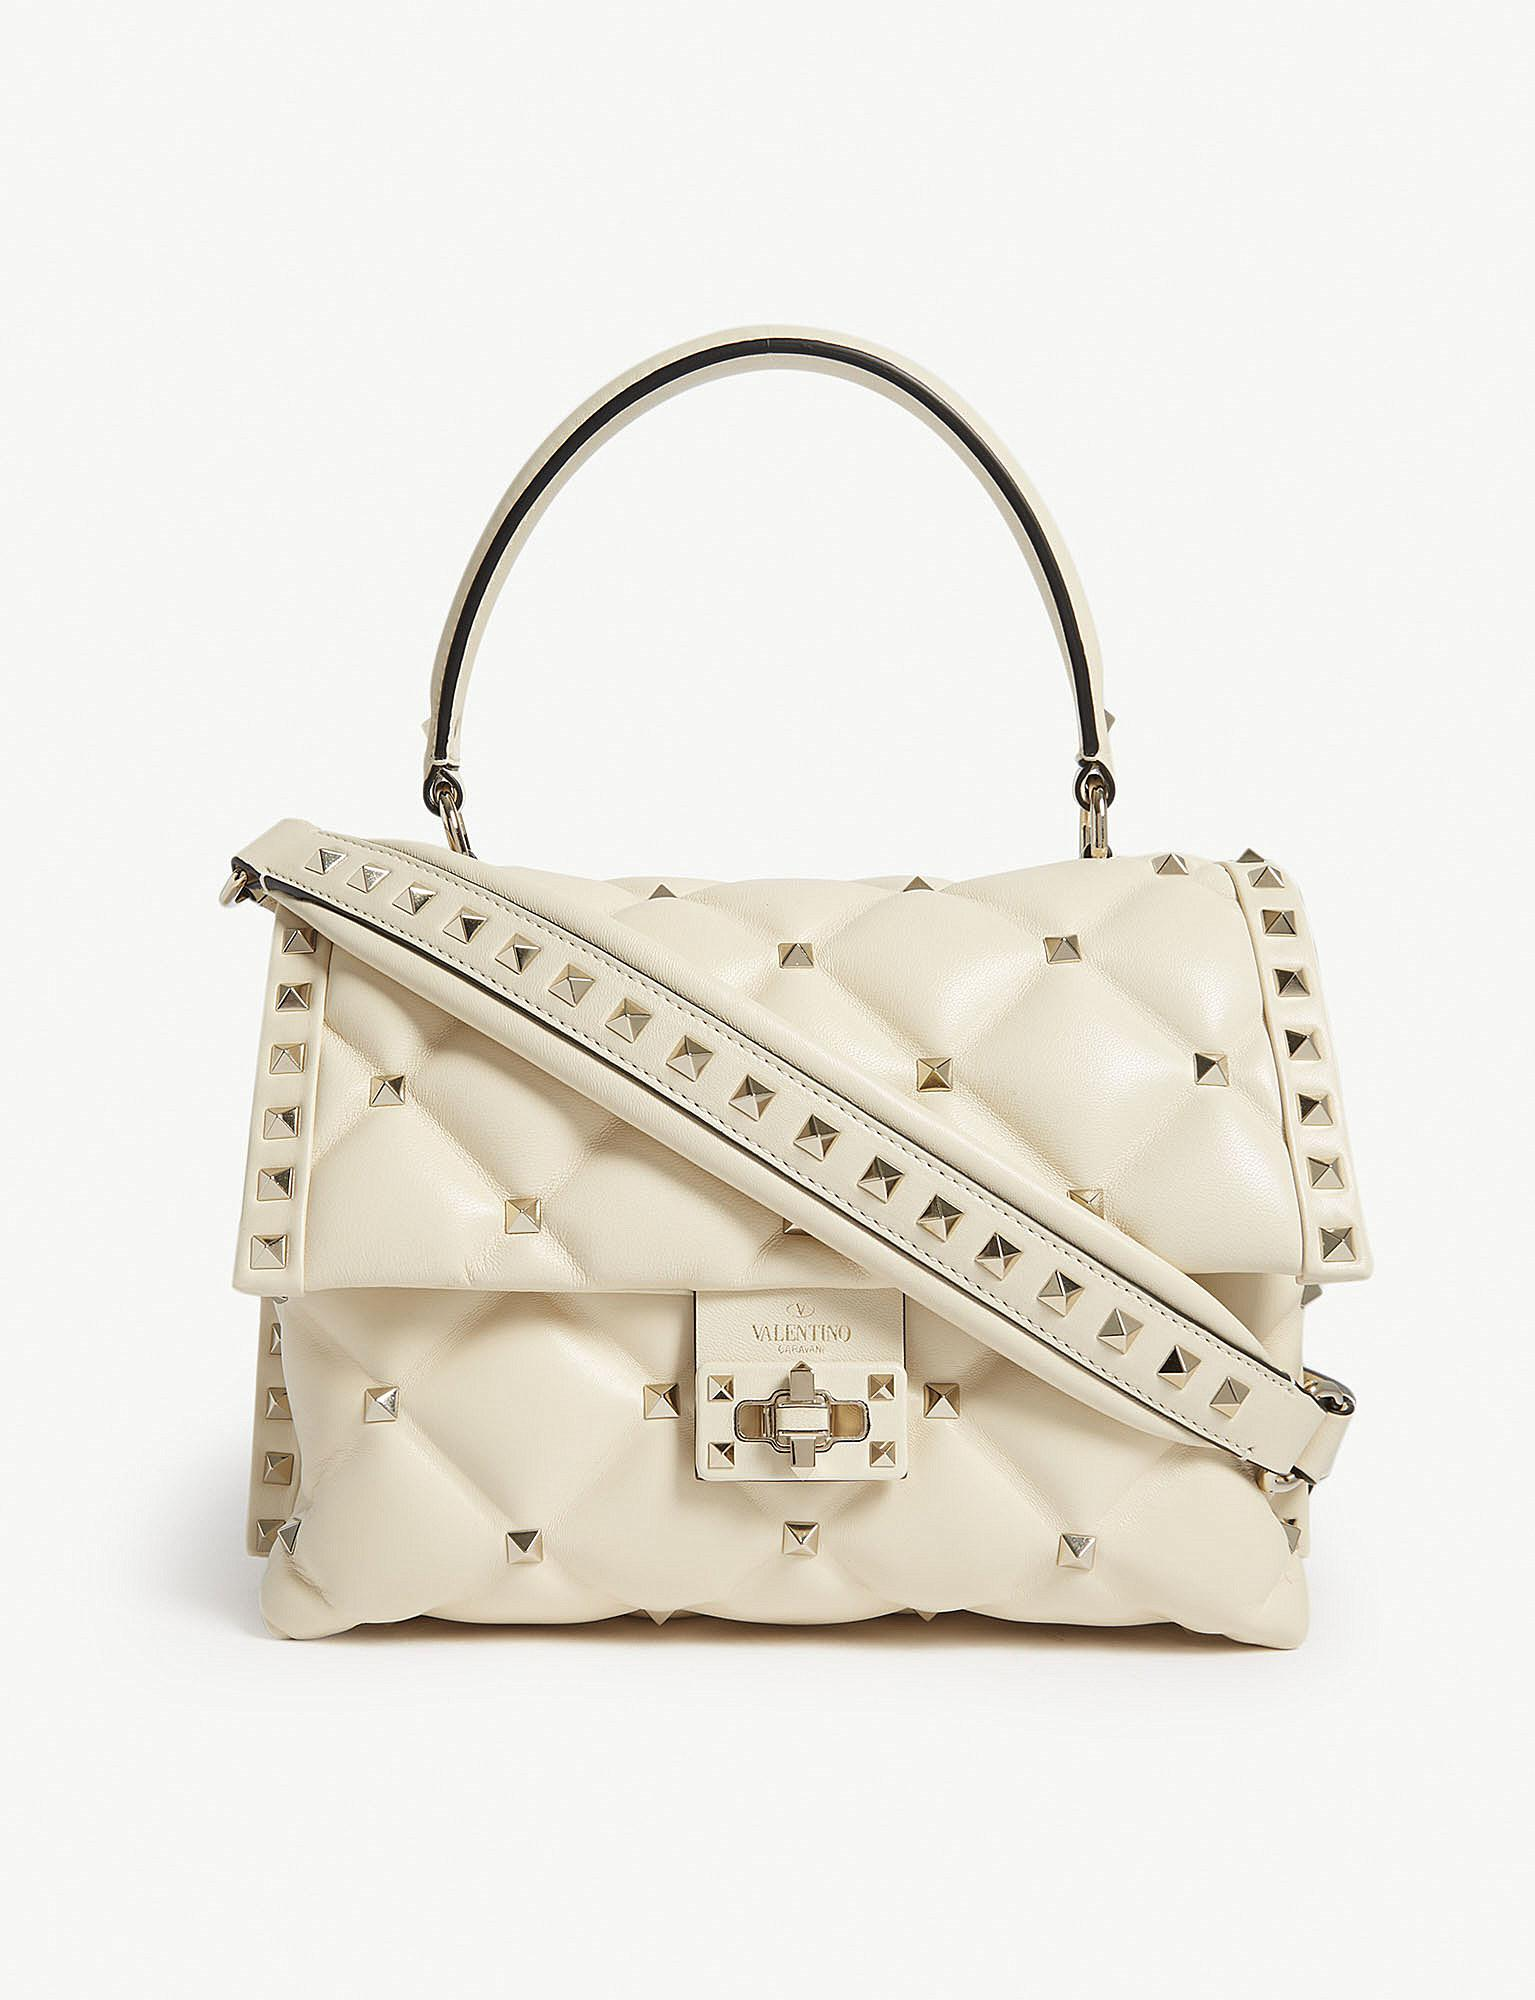 49e188133 Gallery. Previously sold at: Selfridges · Women's Valentino Rockstud Bags